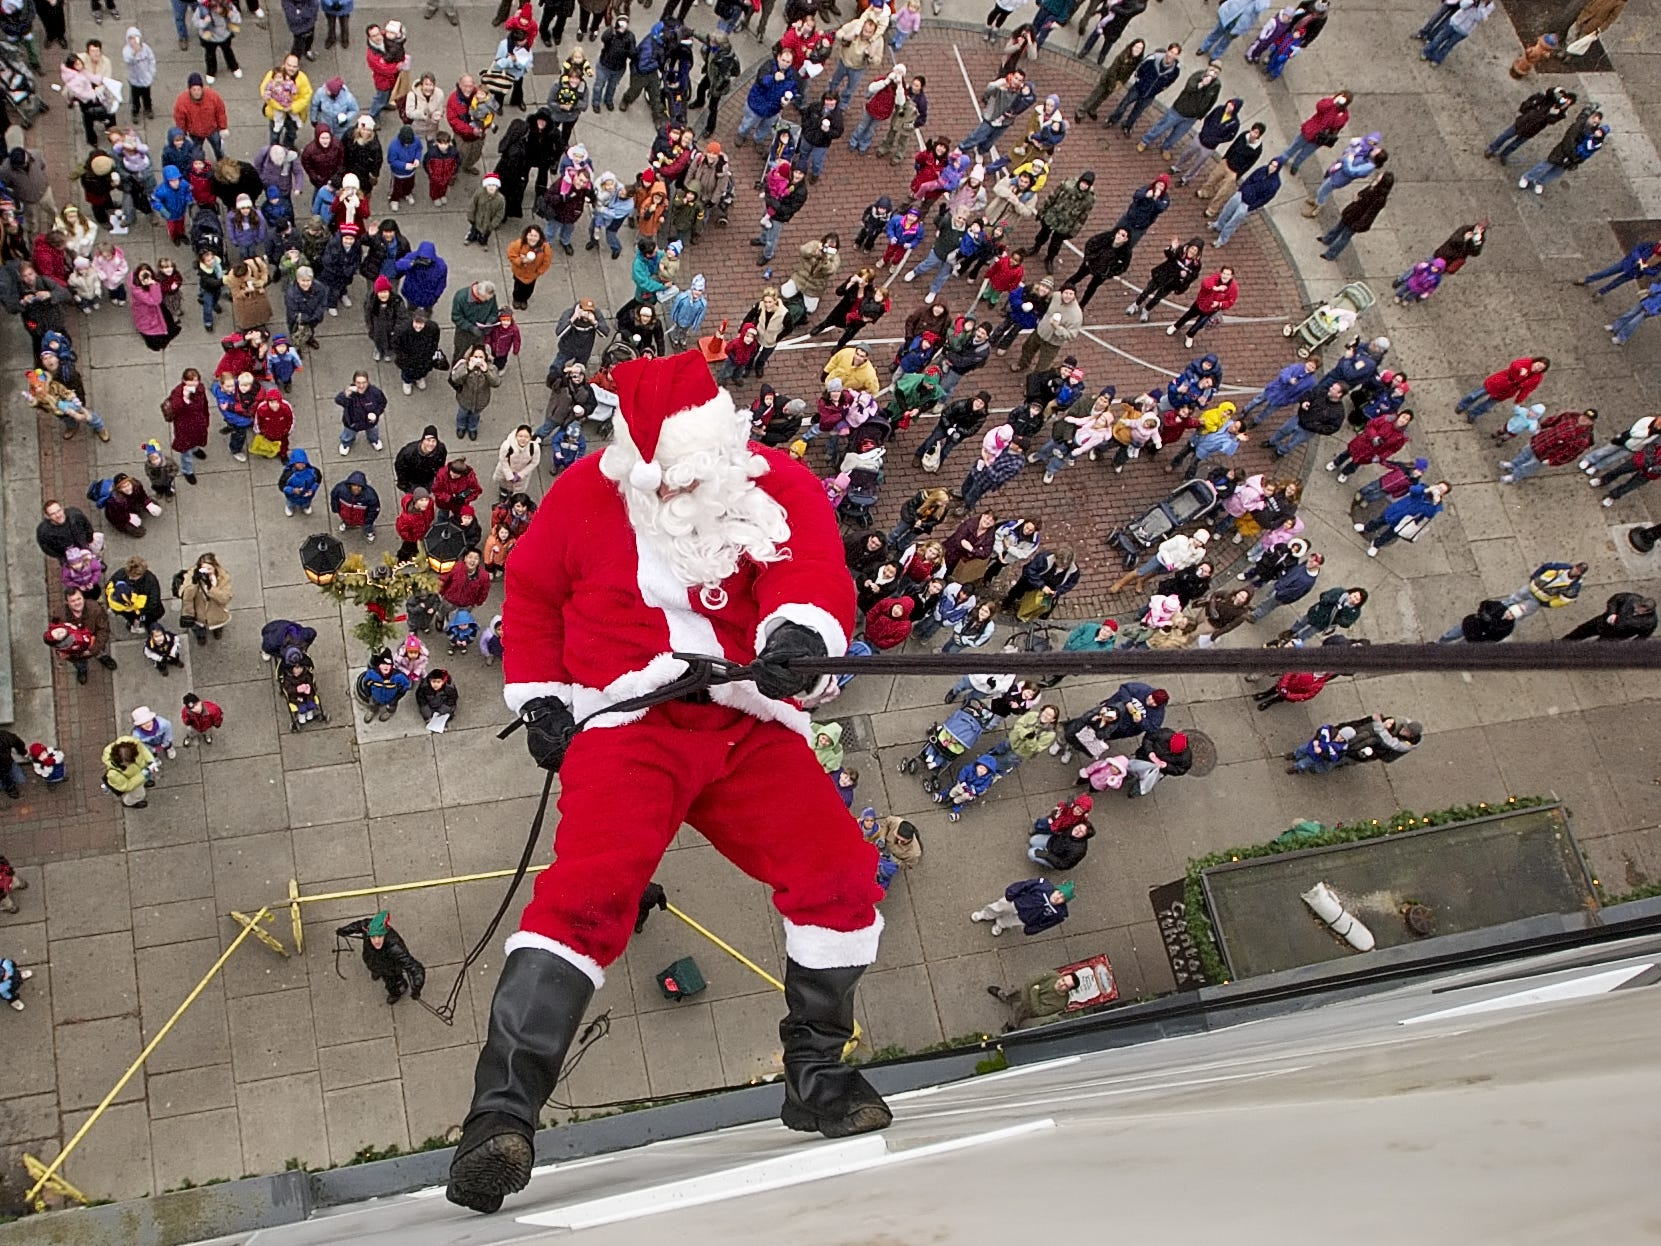 Ithaca Police Sgt. Mike Watkins, dressed as Santa Claus, rappels from the roof of Center Ithaca in 2006 as part of the Downtown Ithaca Holiday Parade of Ice Celebration. Santa's elves, which included members of the SWAT team composed of Ithaca Police Dept. and Tompkins County Sheriffs' Office personnel, also rappelled down the building.